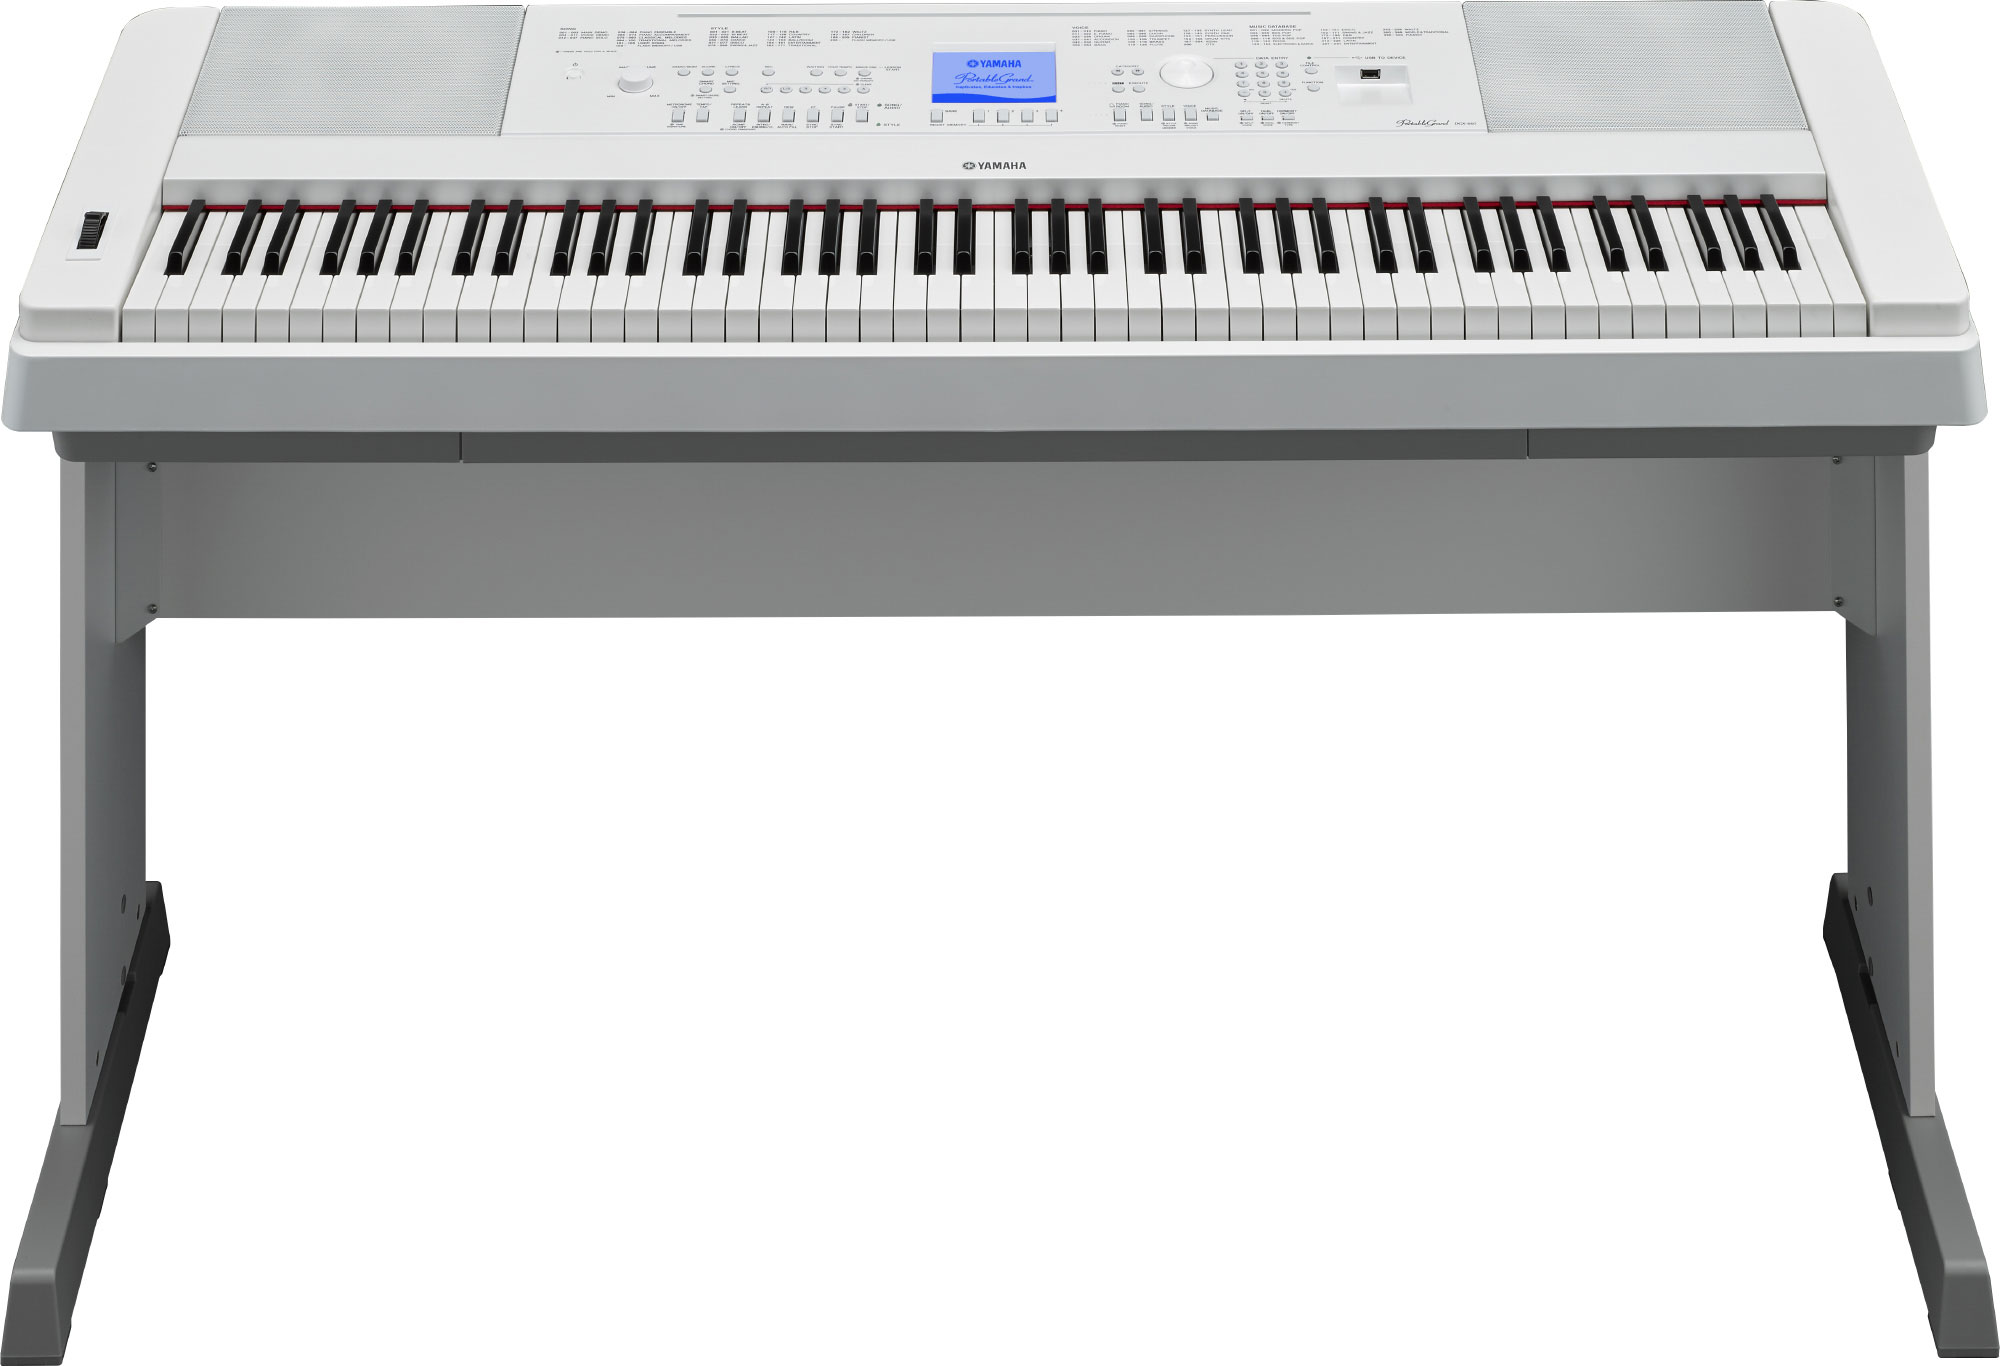 ROLAND FP-30 BK PACK GROUND 2. Claviers portables Pack Ground Claviers  portables Pianos numériques